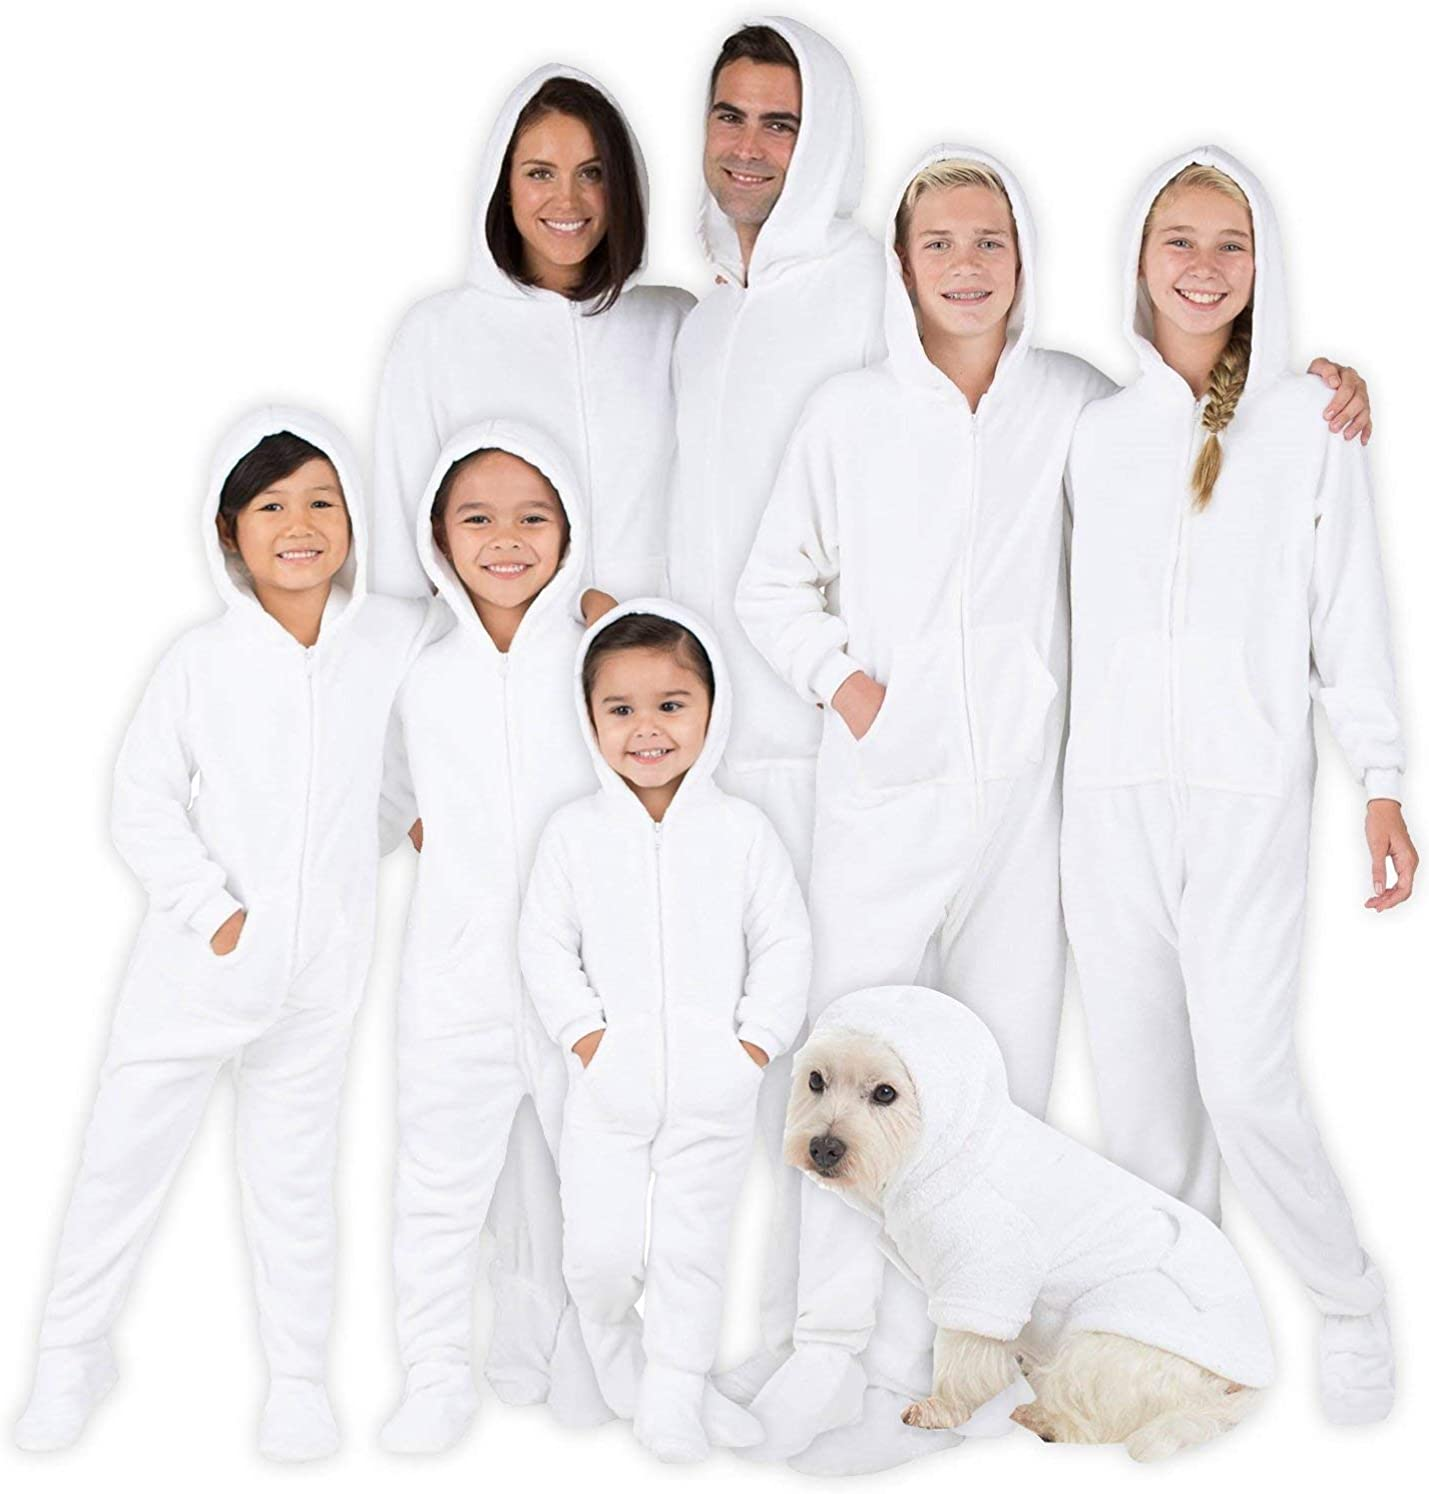 Men Footed Pajamas Girls Family Matching Frosted White Hoodie Onesies for Boys Women and Pets